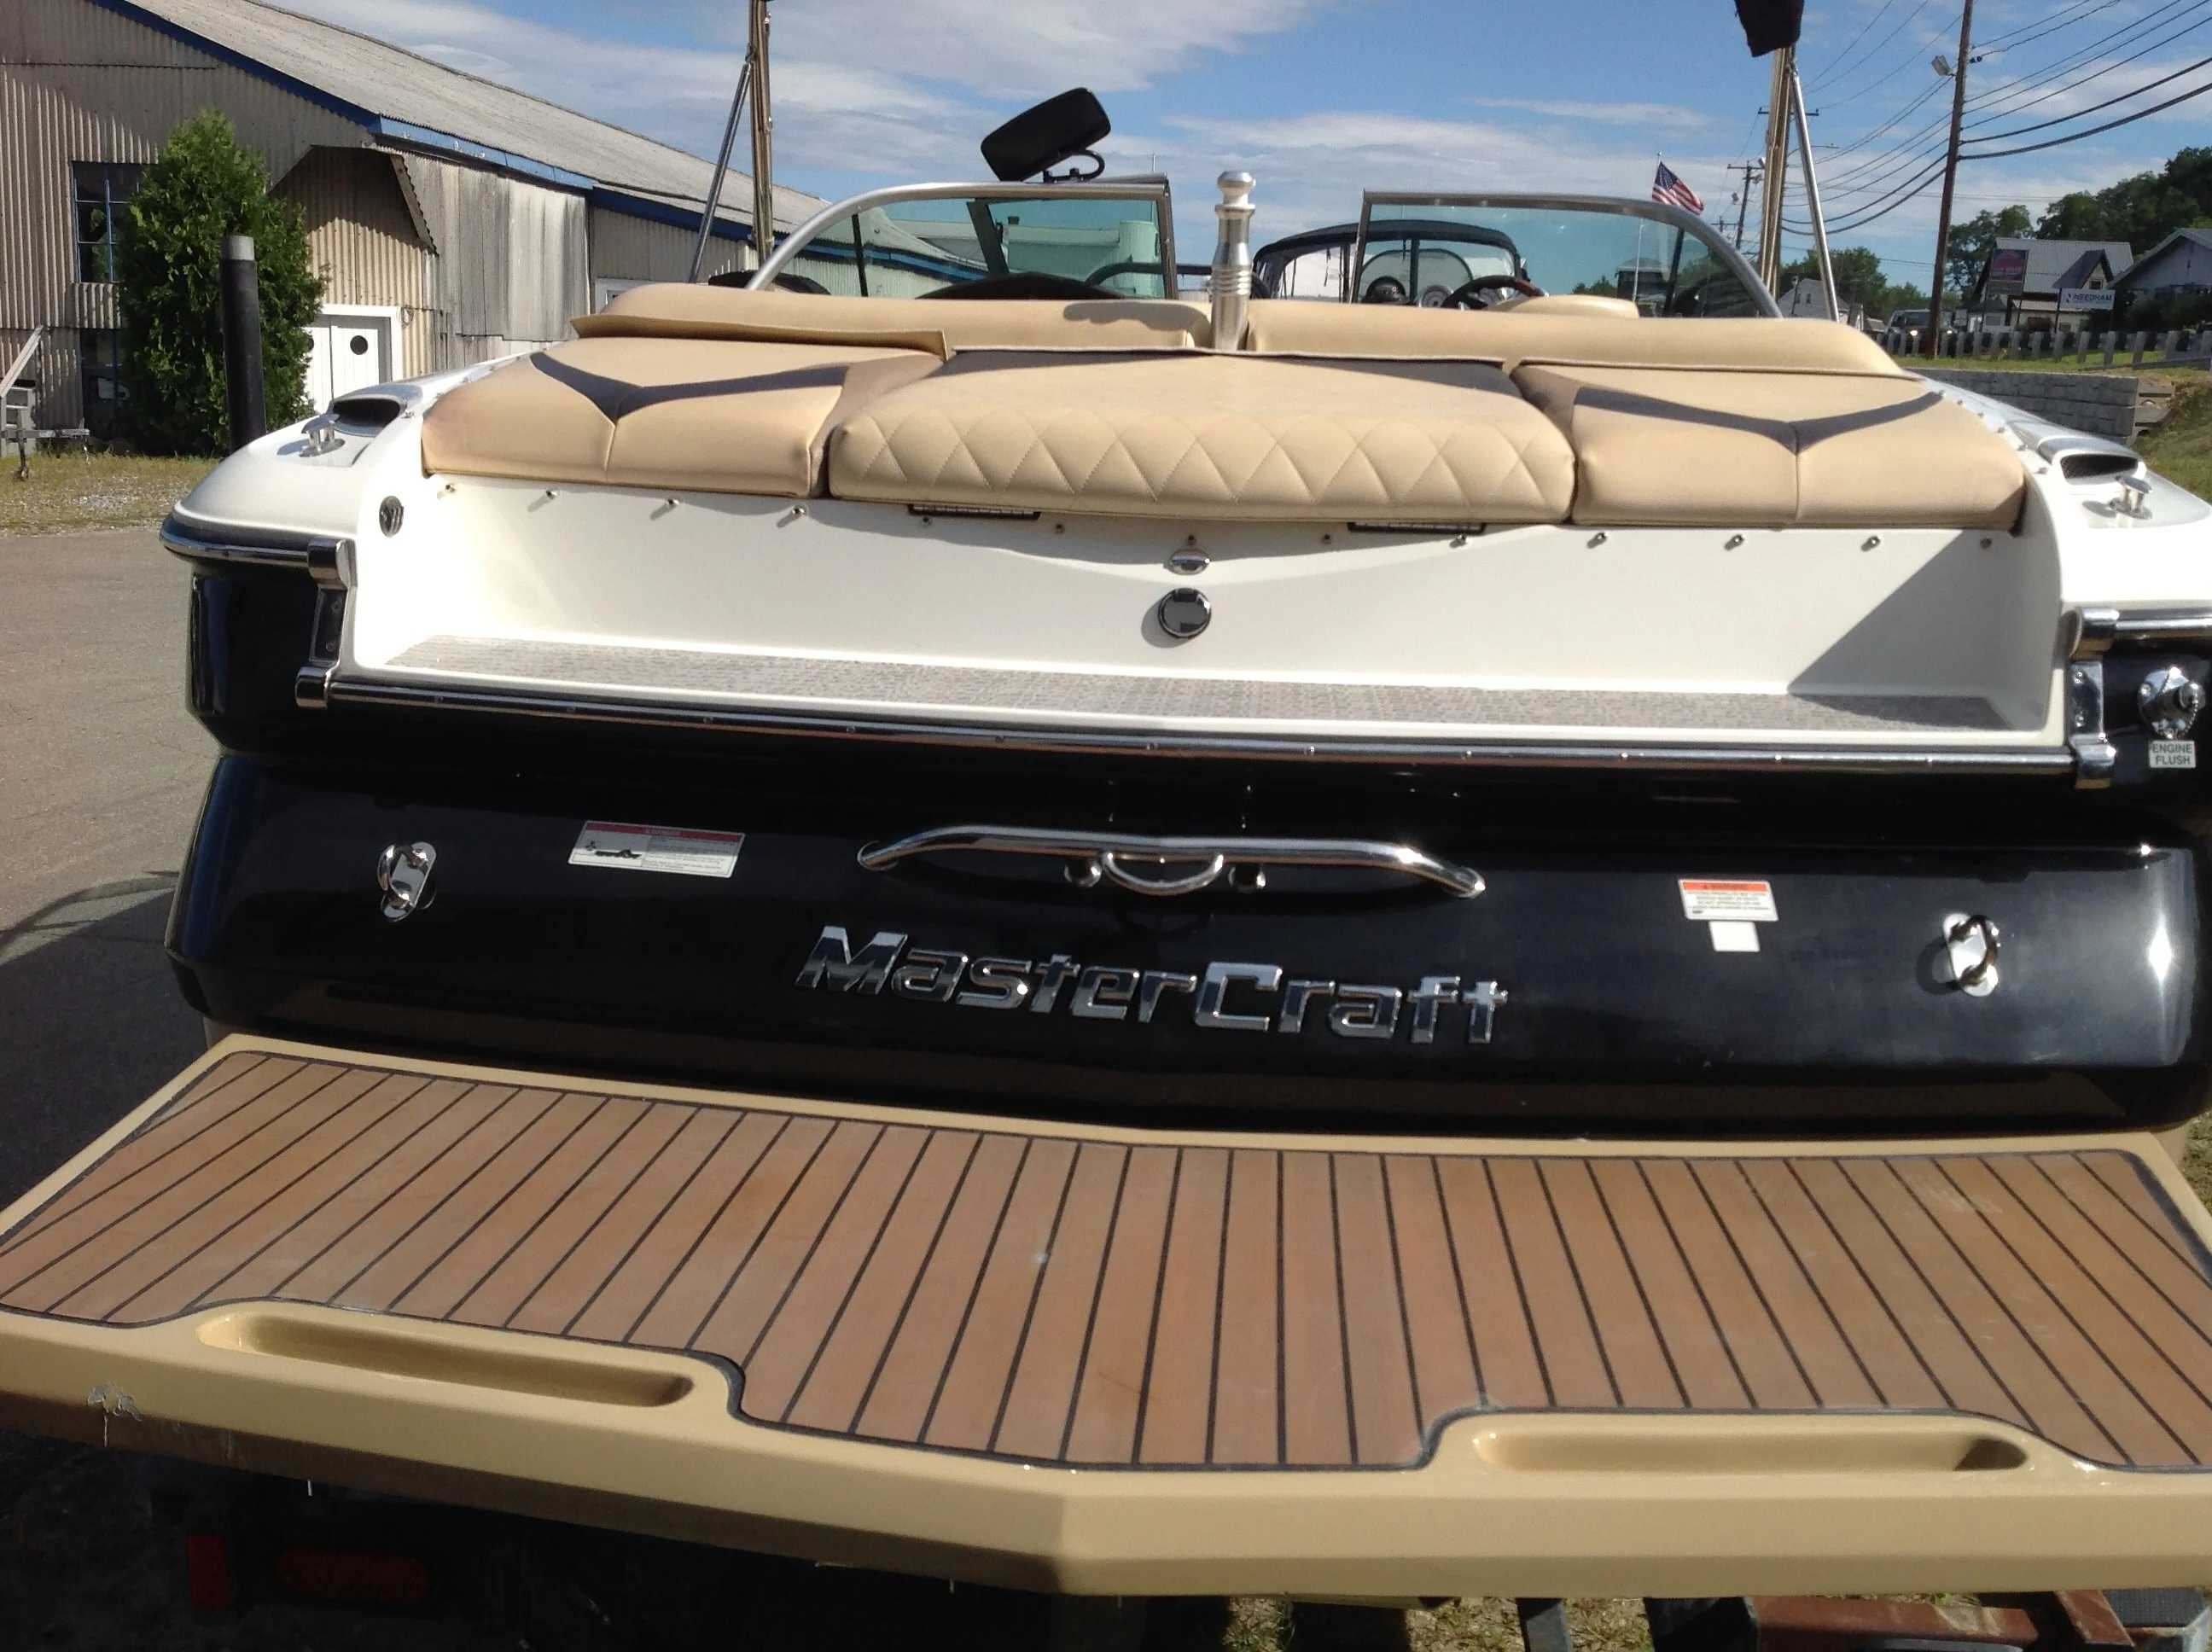 2010 Mastercraft boat for sale, model of the boat is Maristar 235 & Image # 15 of 16